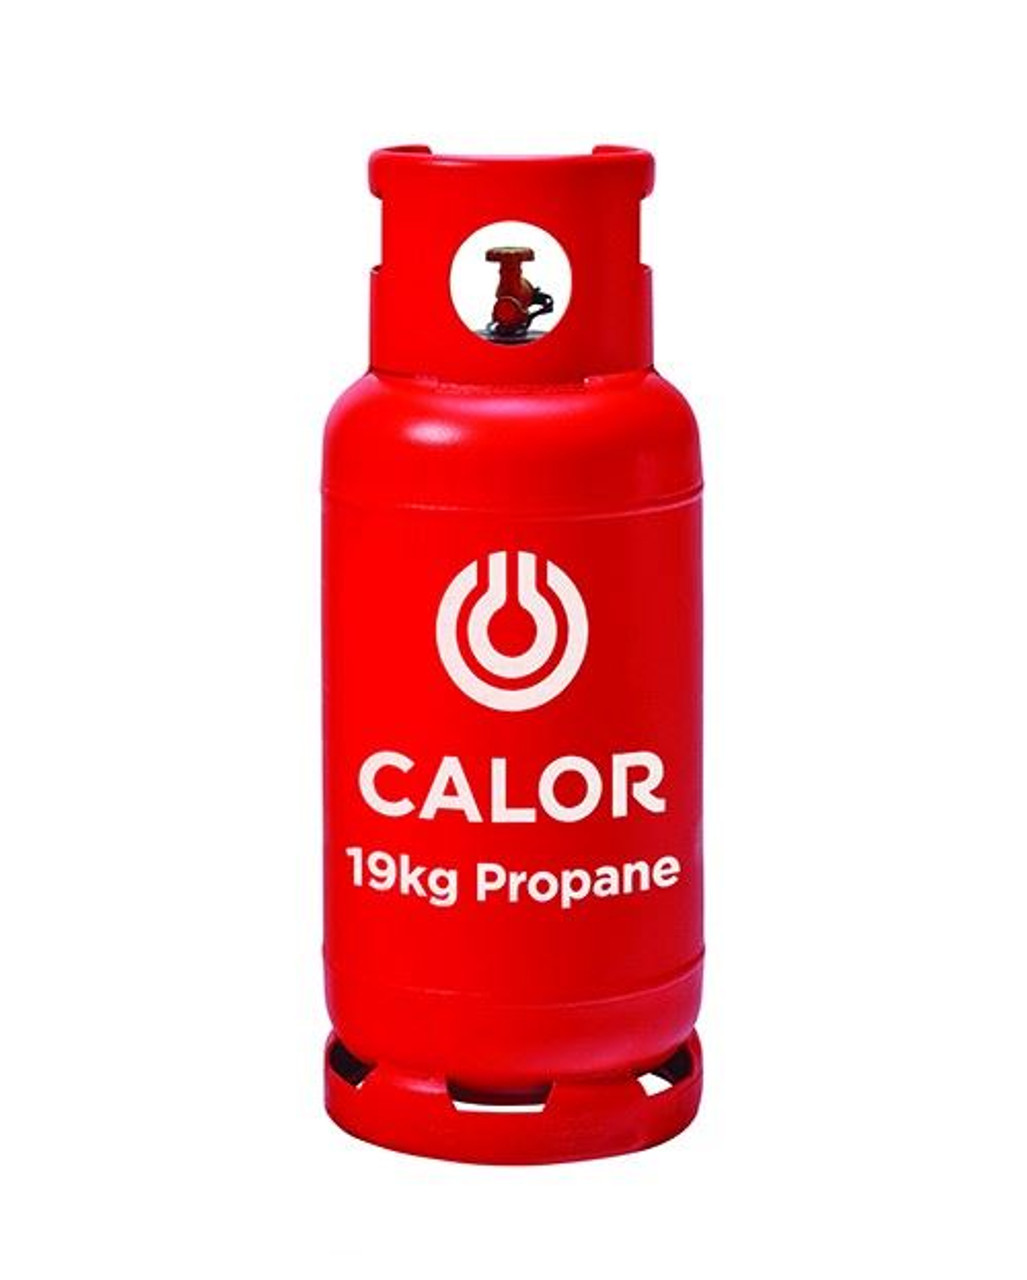 19kg Propane Calor Gas Bottle (Red - Collection Only)